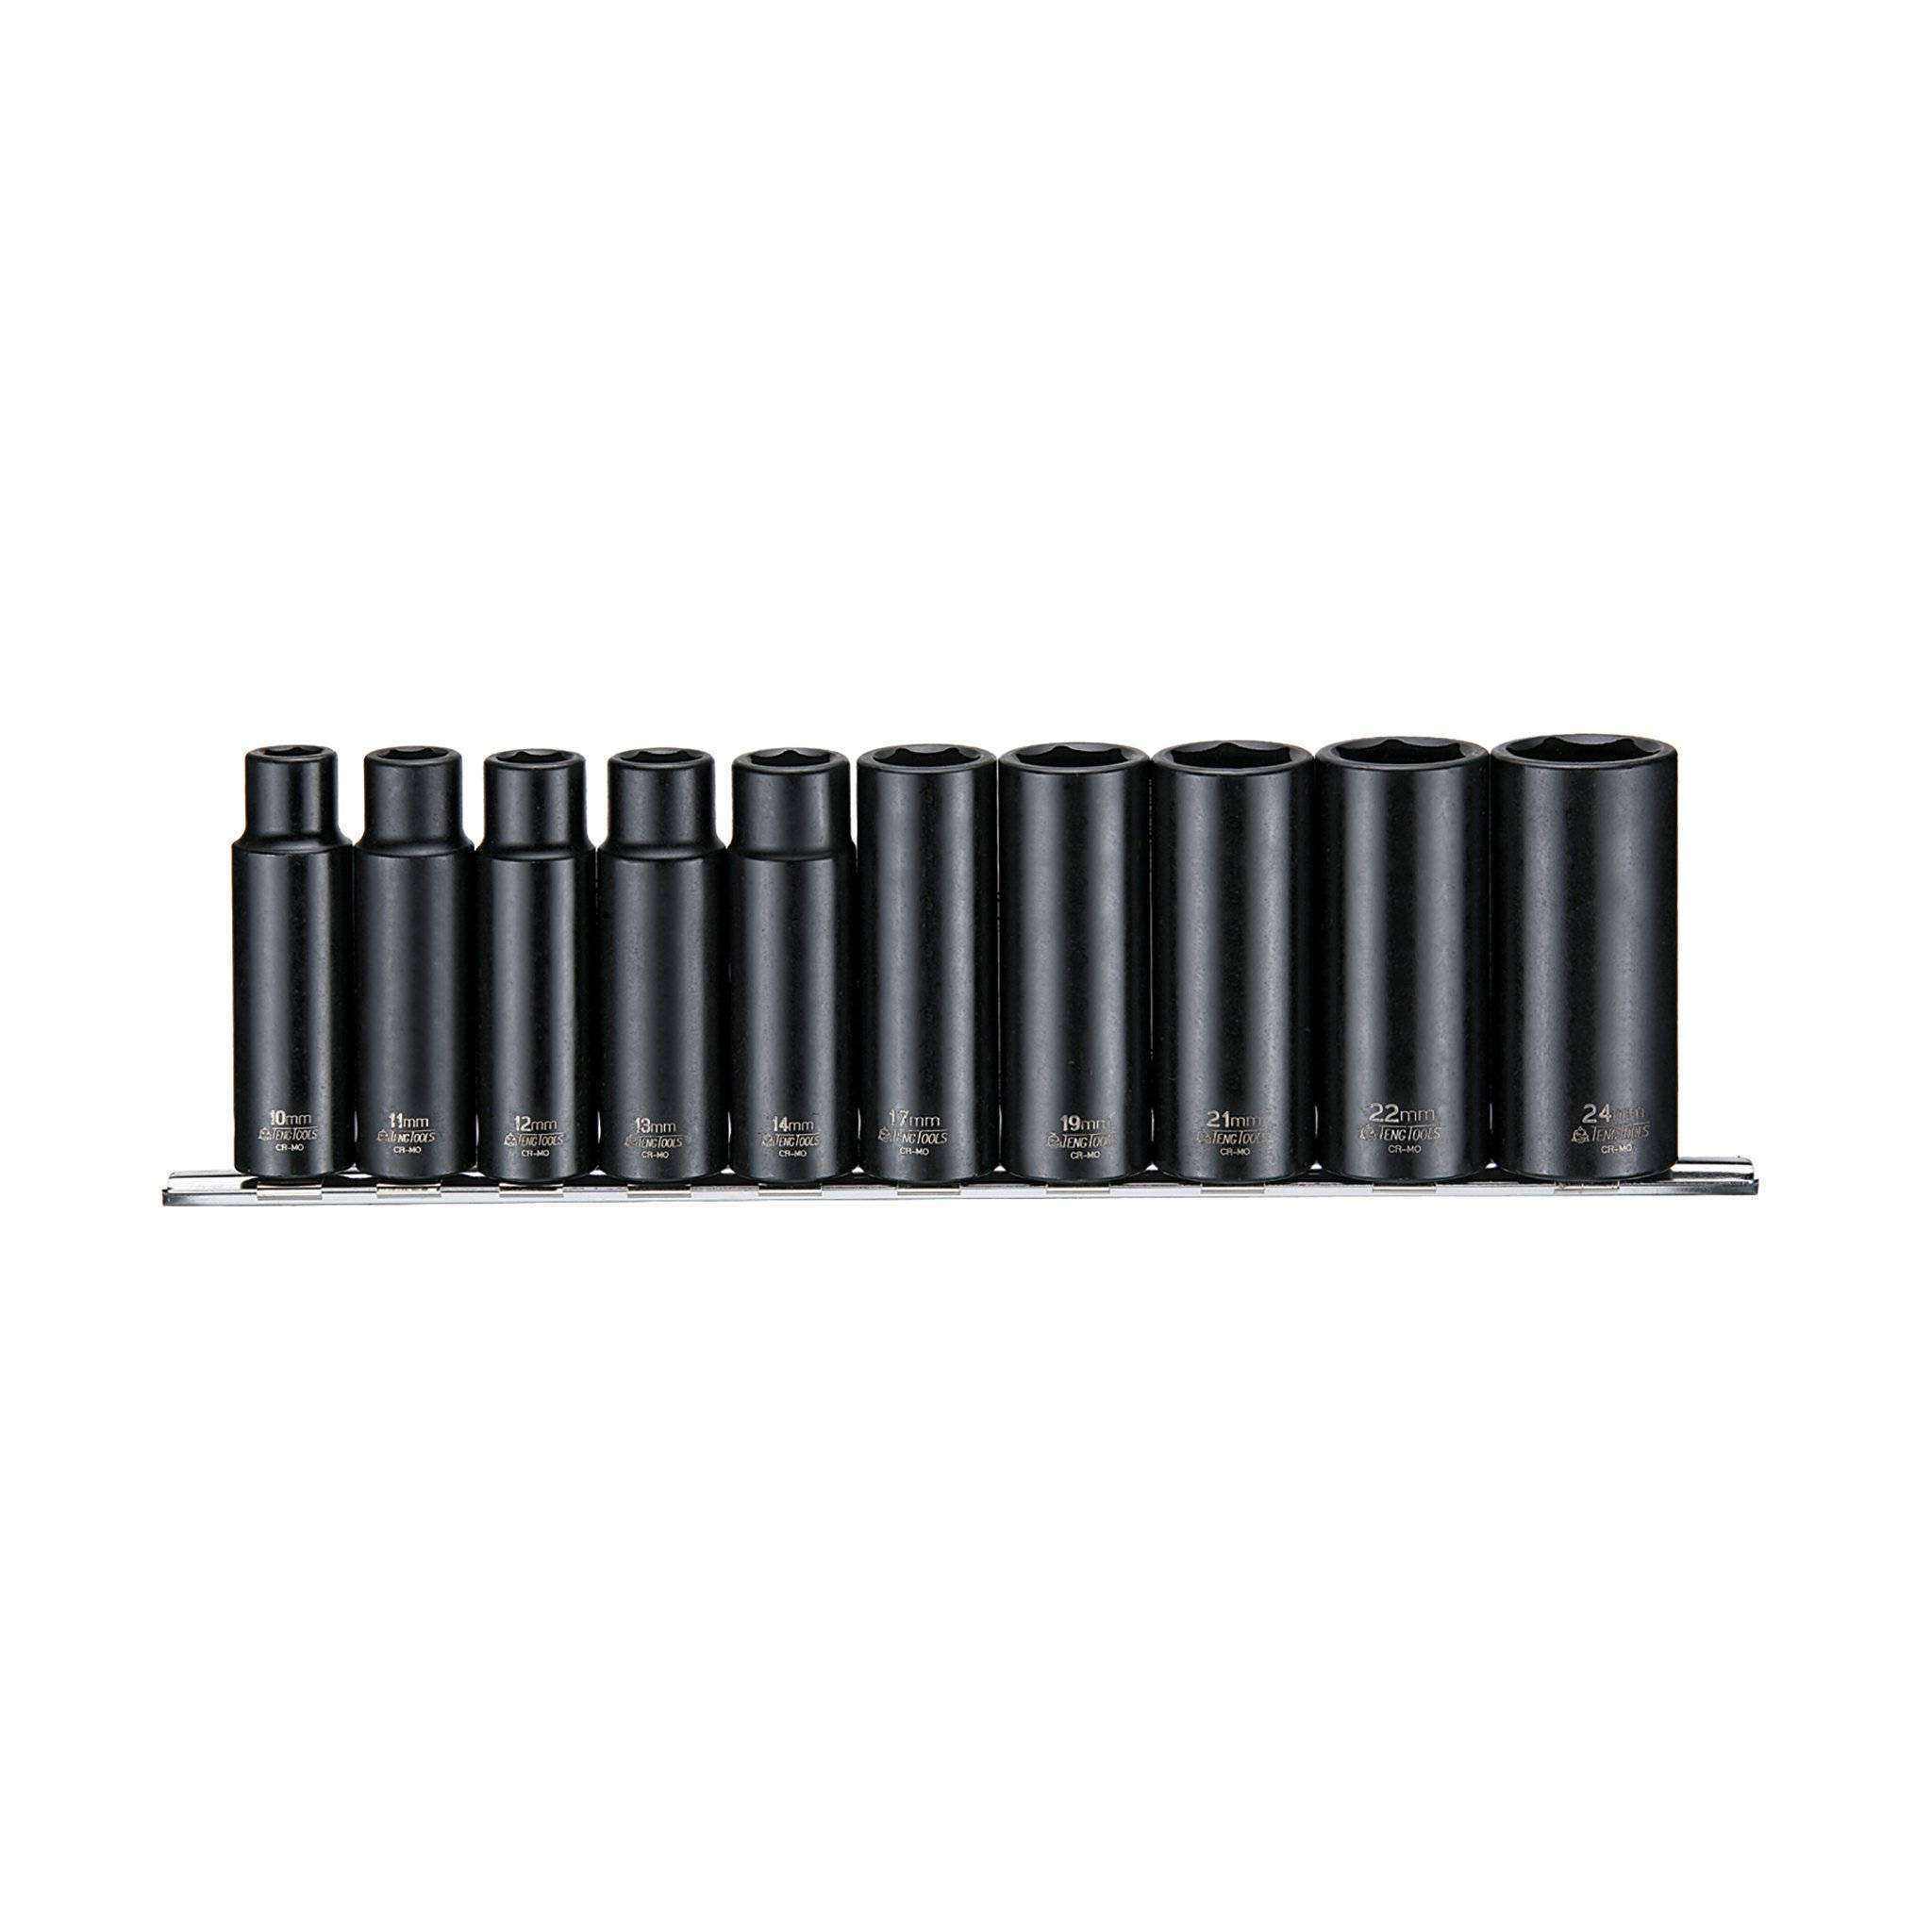 Teng Tools - 10 Piece 1/2 Inch Drive 6 Point Deep Metric Impact Socket Set - 9126 - Teng Tools USA